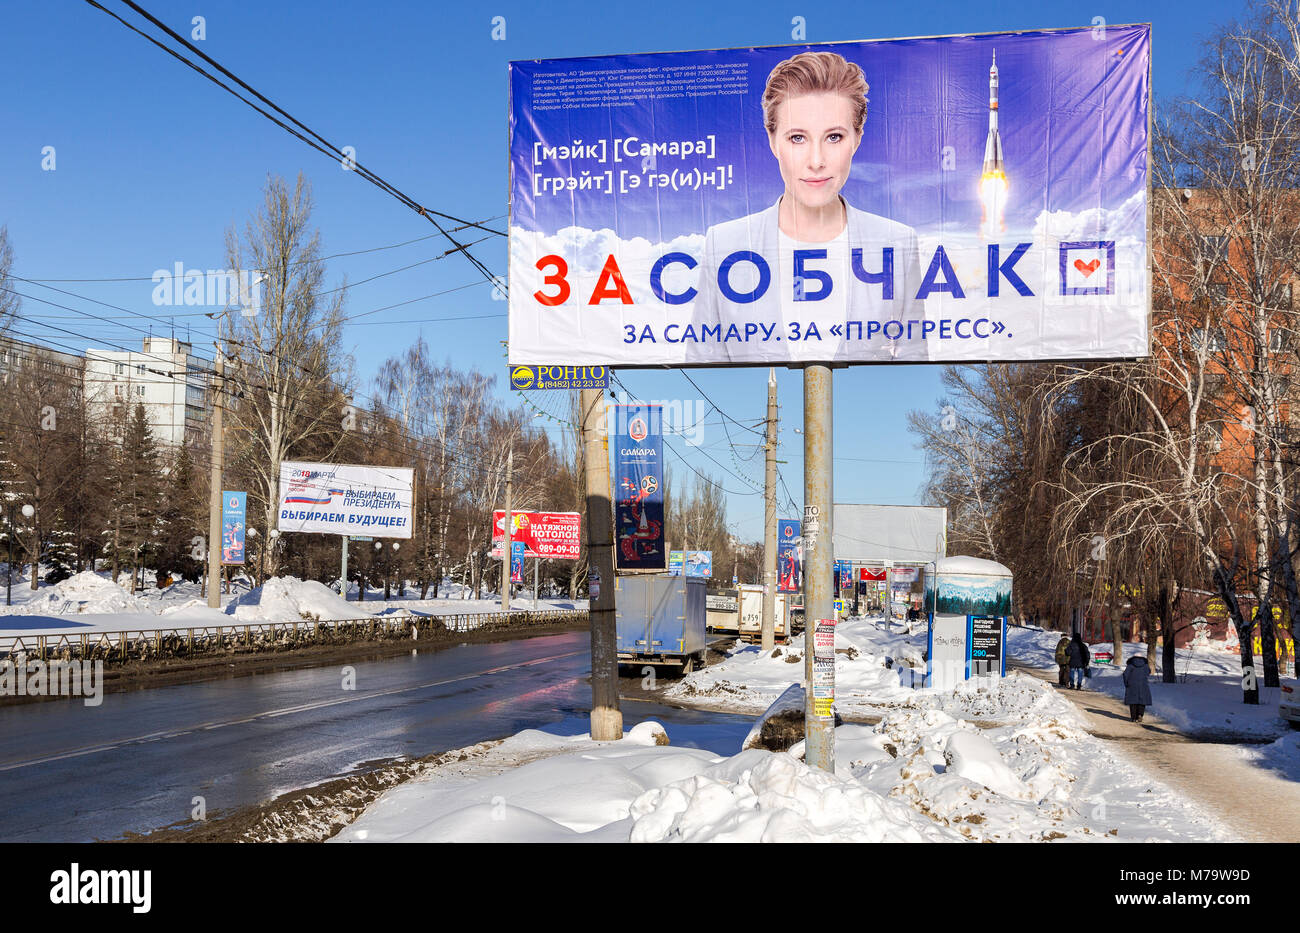 Samara, Russia - March 9, 2018: Election of the President of Russia in March 18, 2018. Billboard of presidential - Stock Image